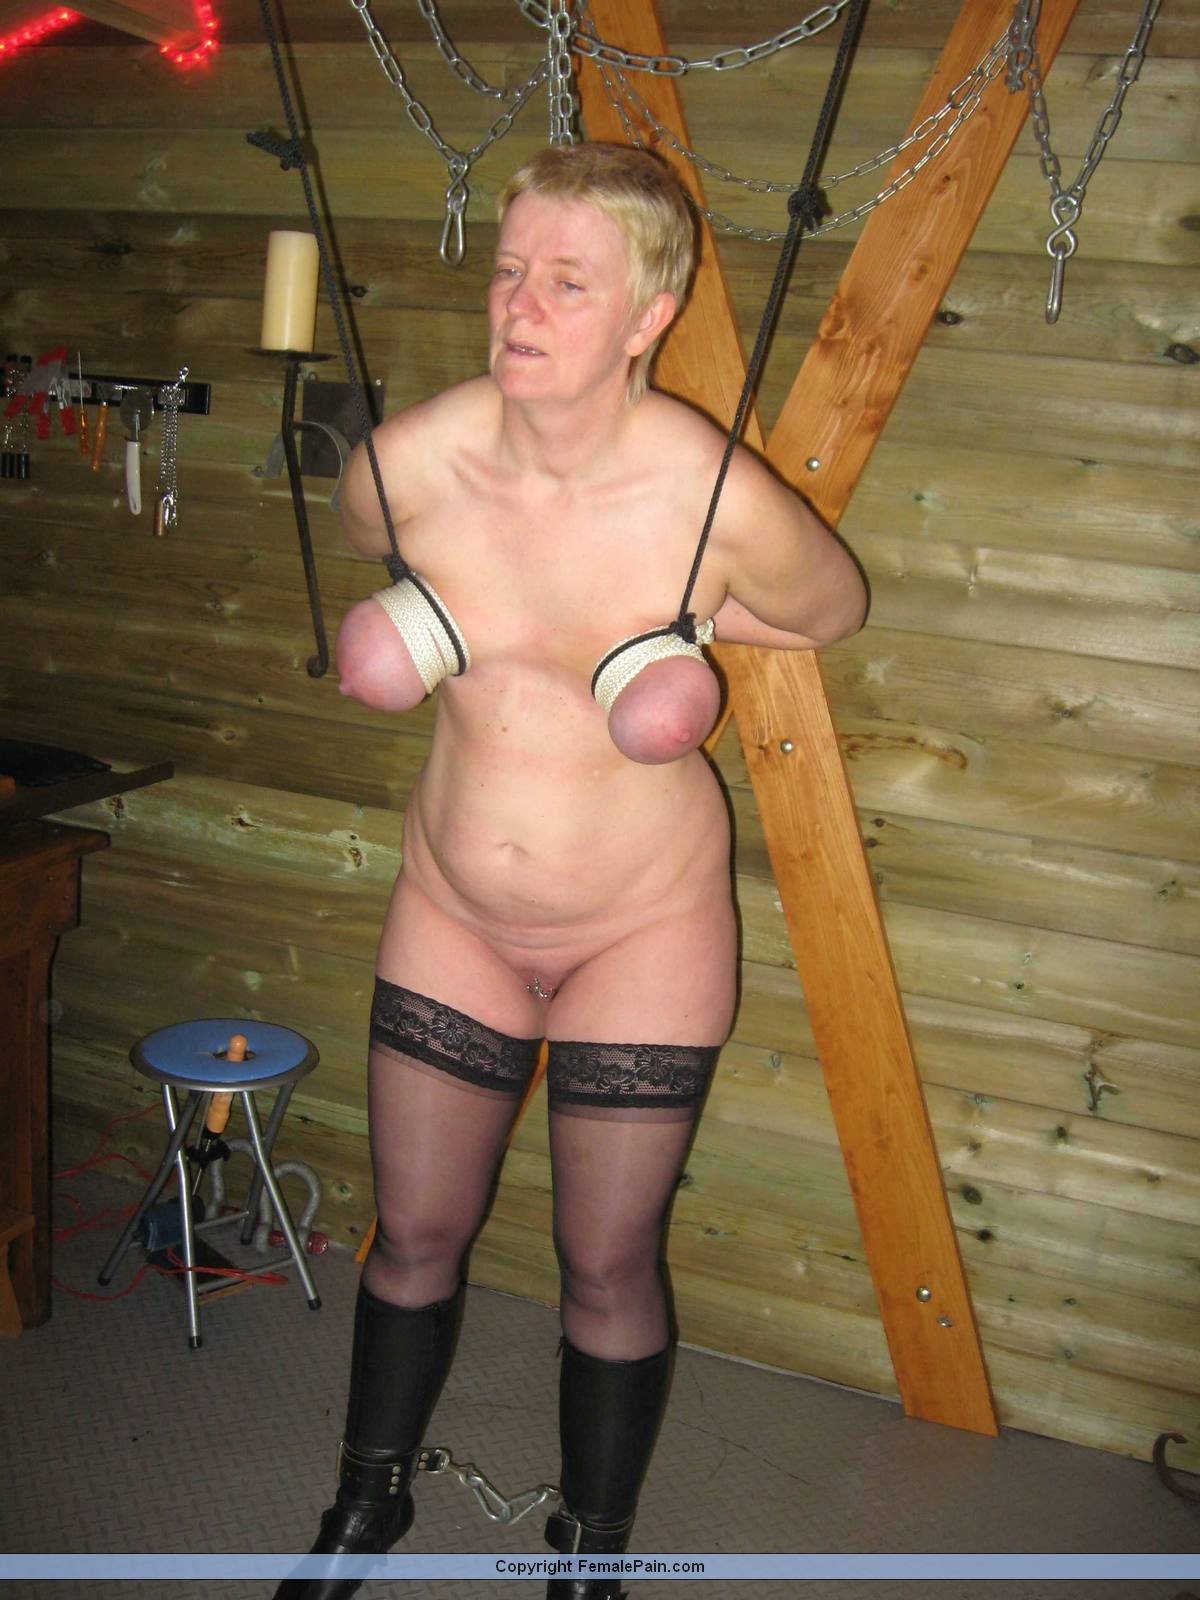 Agree, the Granny bdsm pain amateur can suggest